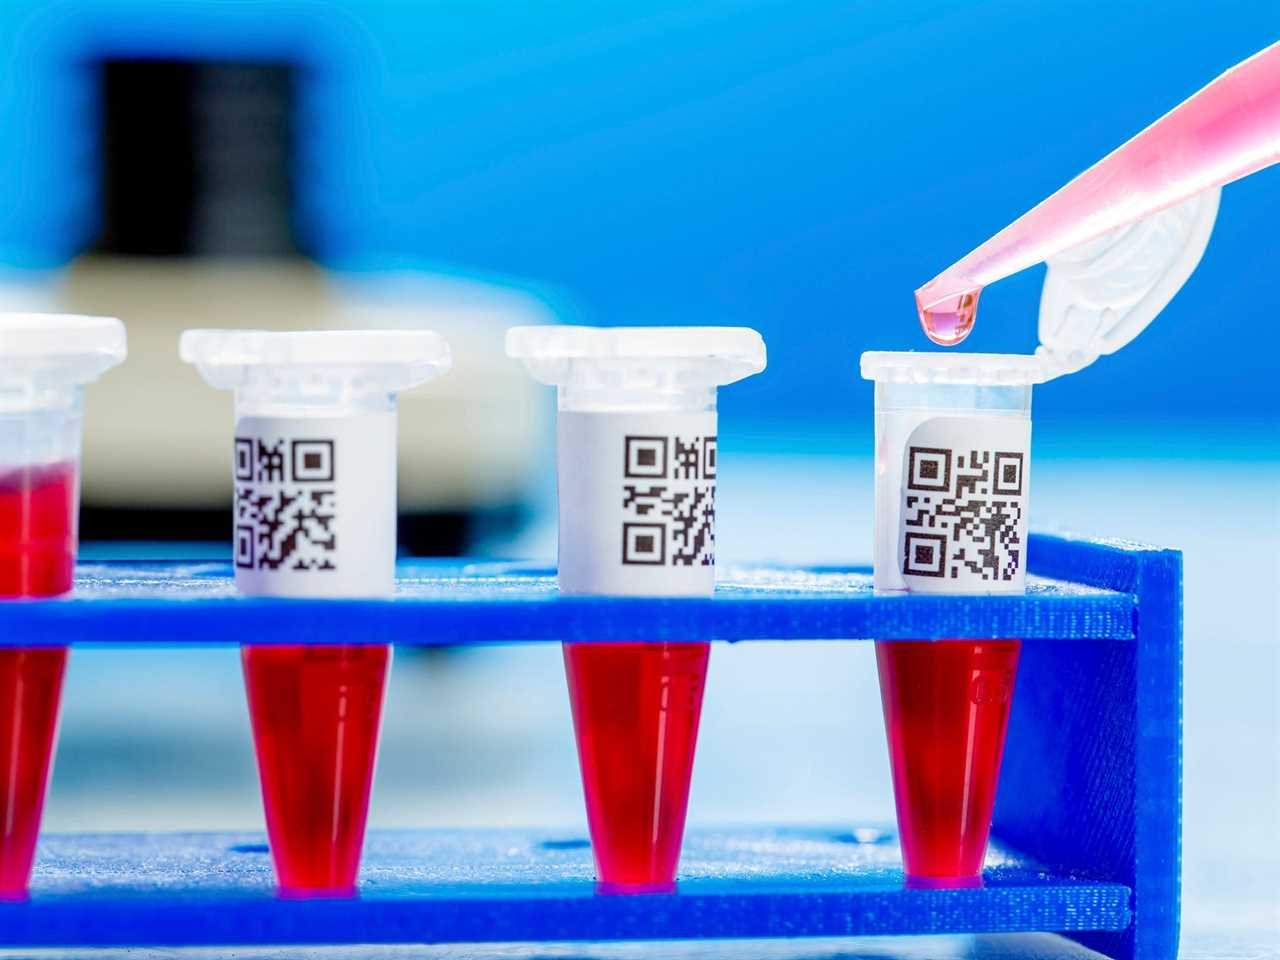 Eppendorf tubes with QR Codes